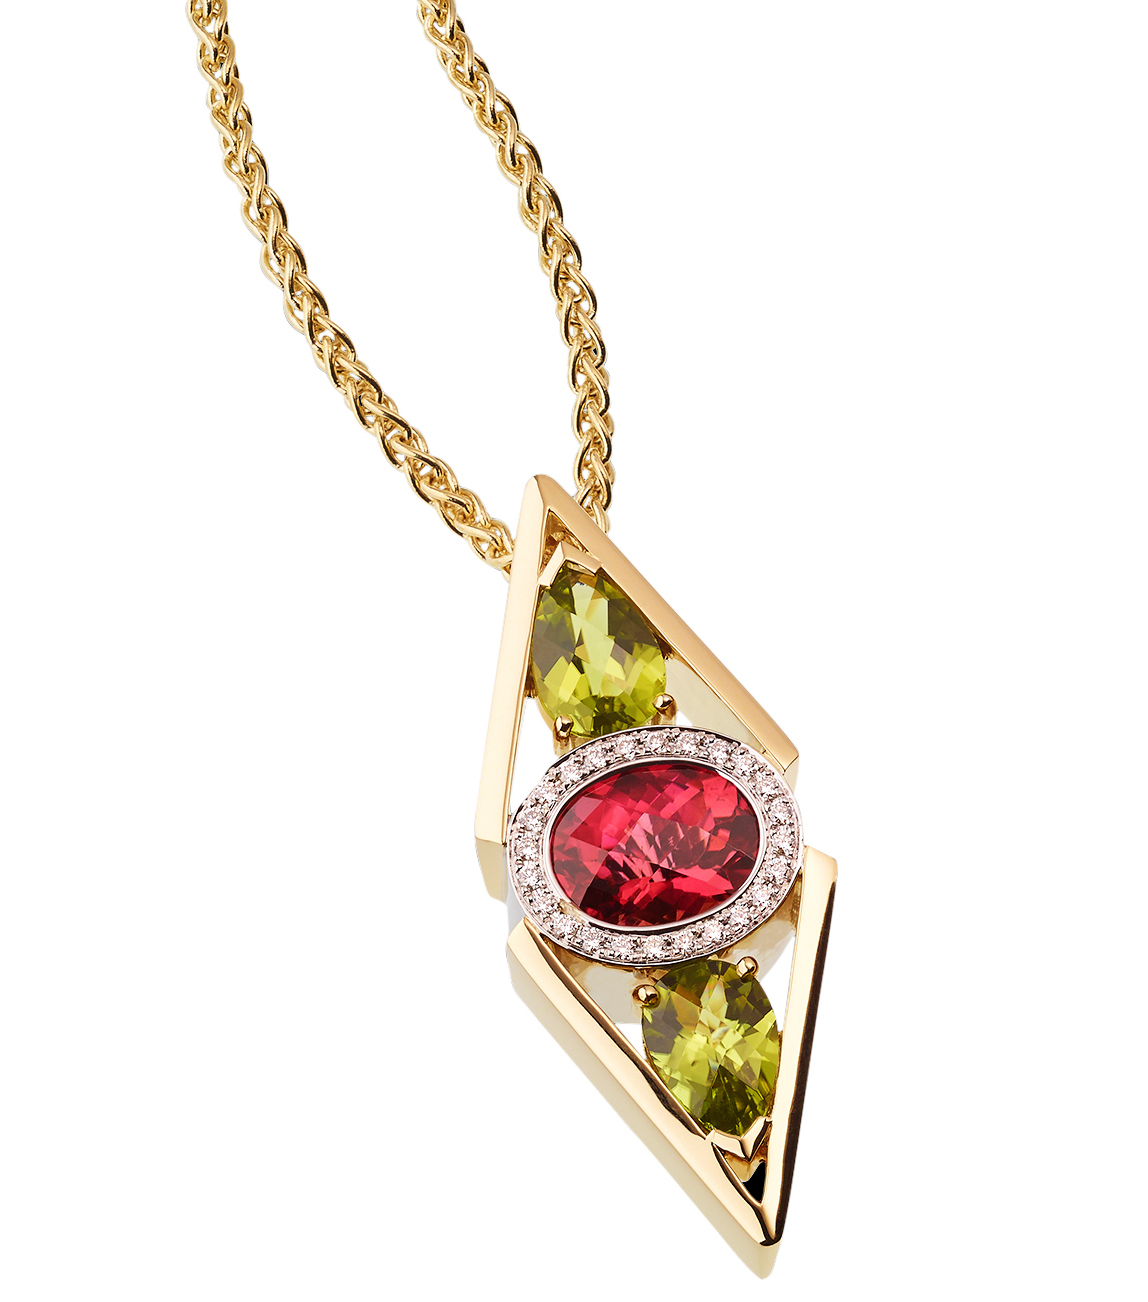 John Atencio Signature tourmaline pendant | JCK On Your Market